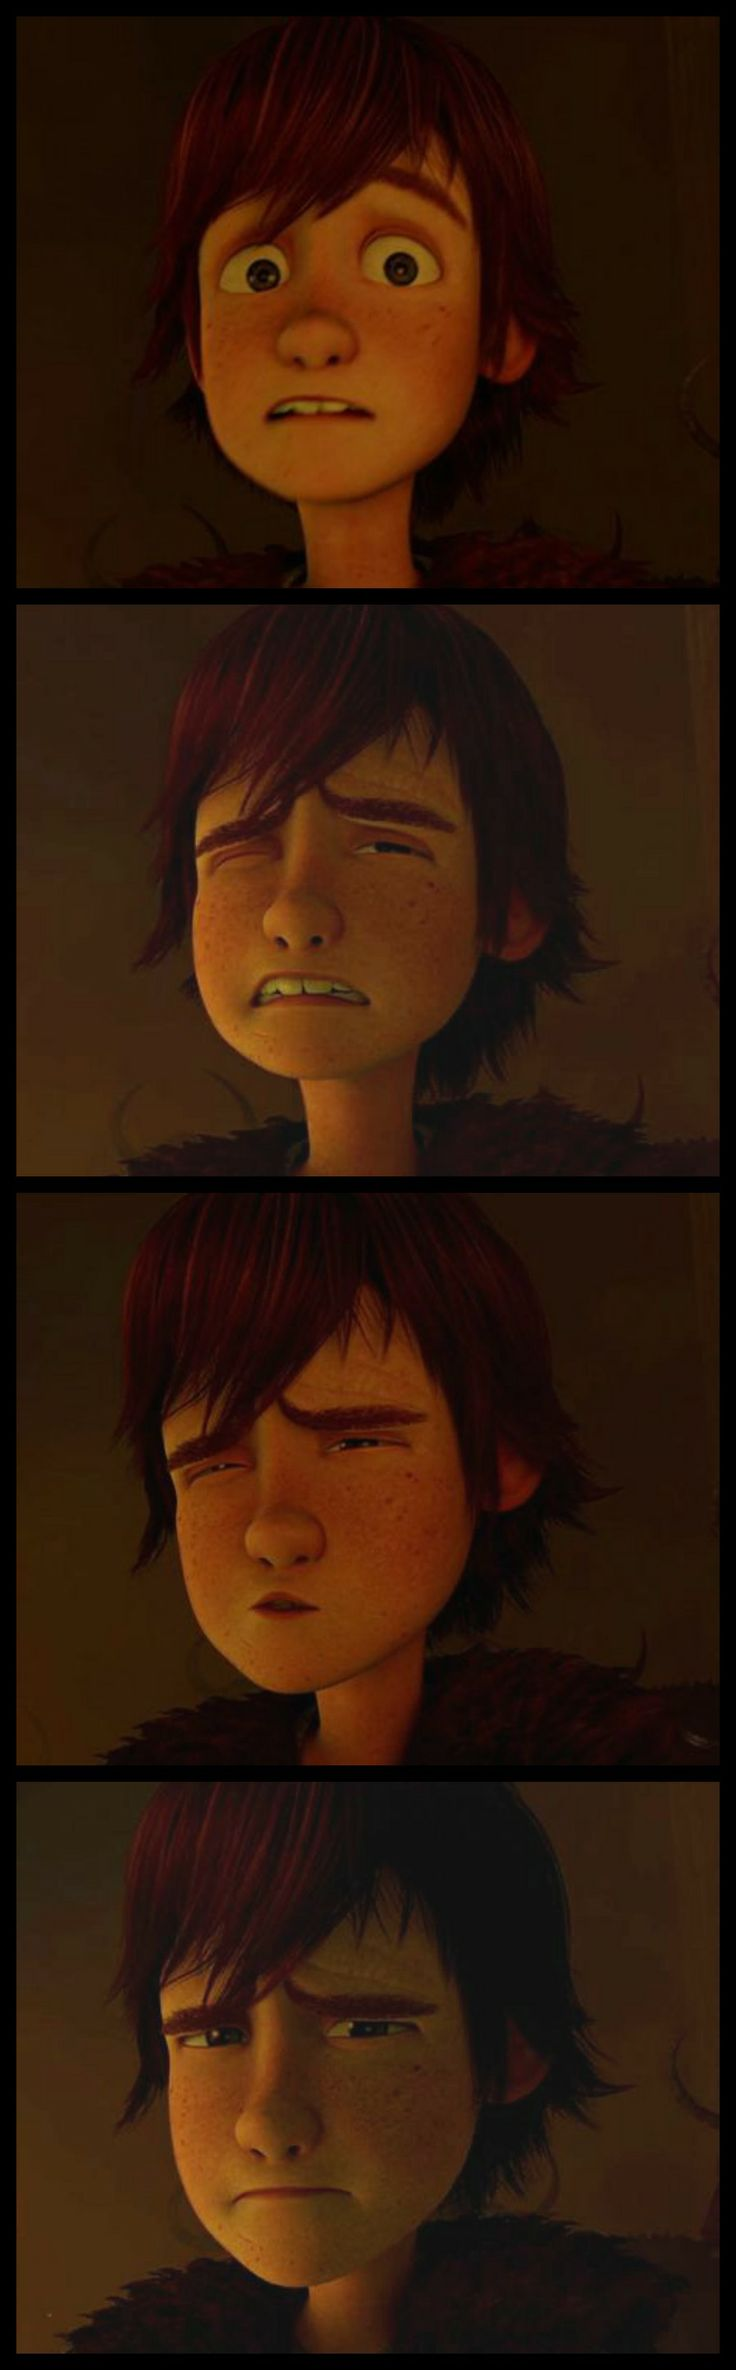 Hahaha! I love this part in HTTYD. And his wincing expressions. XD